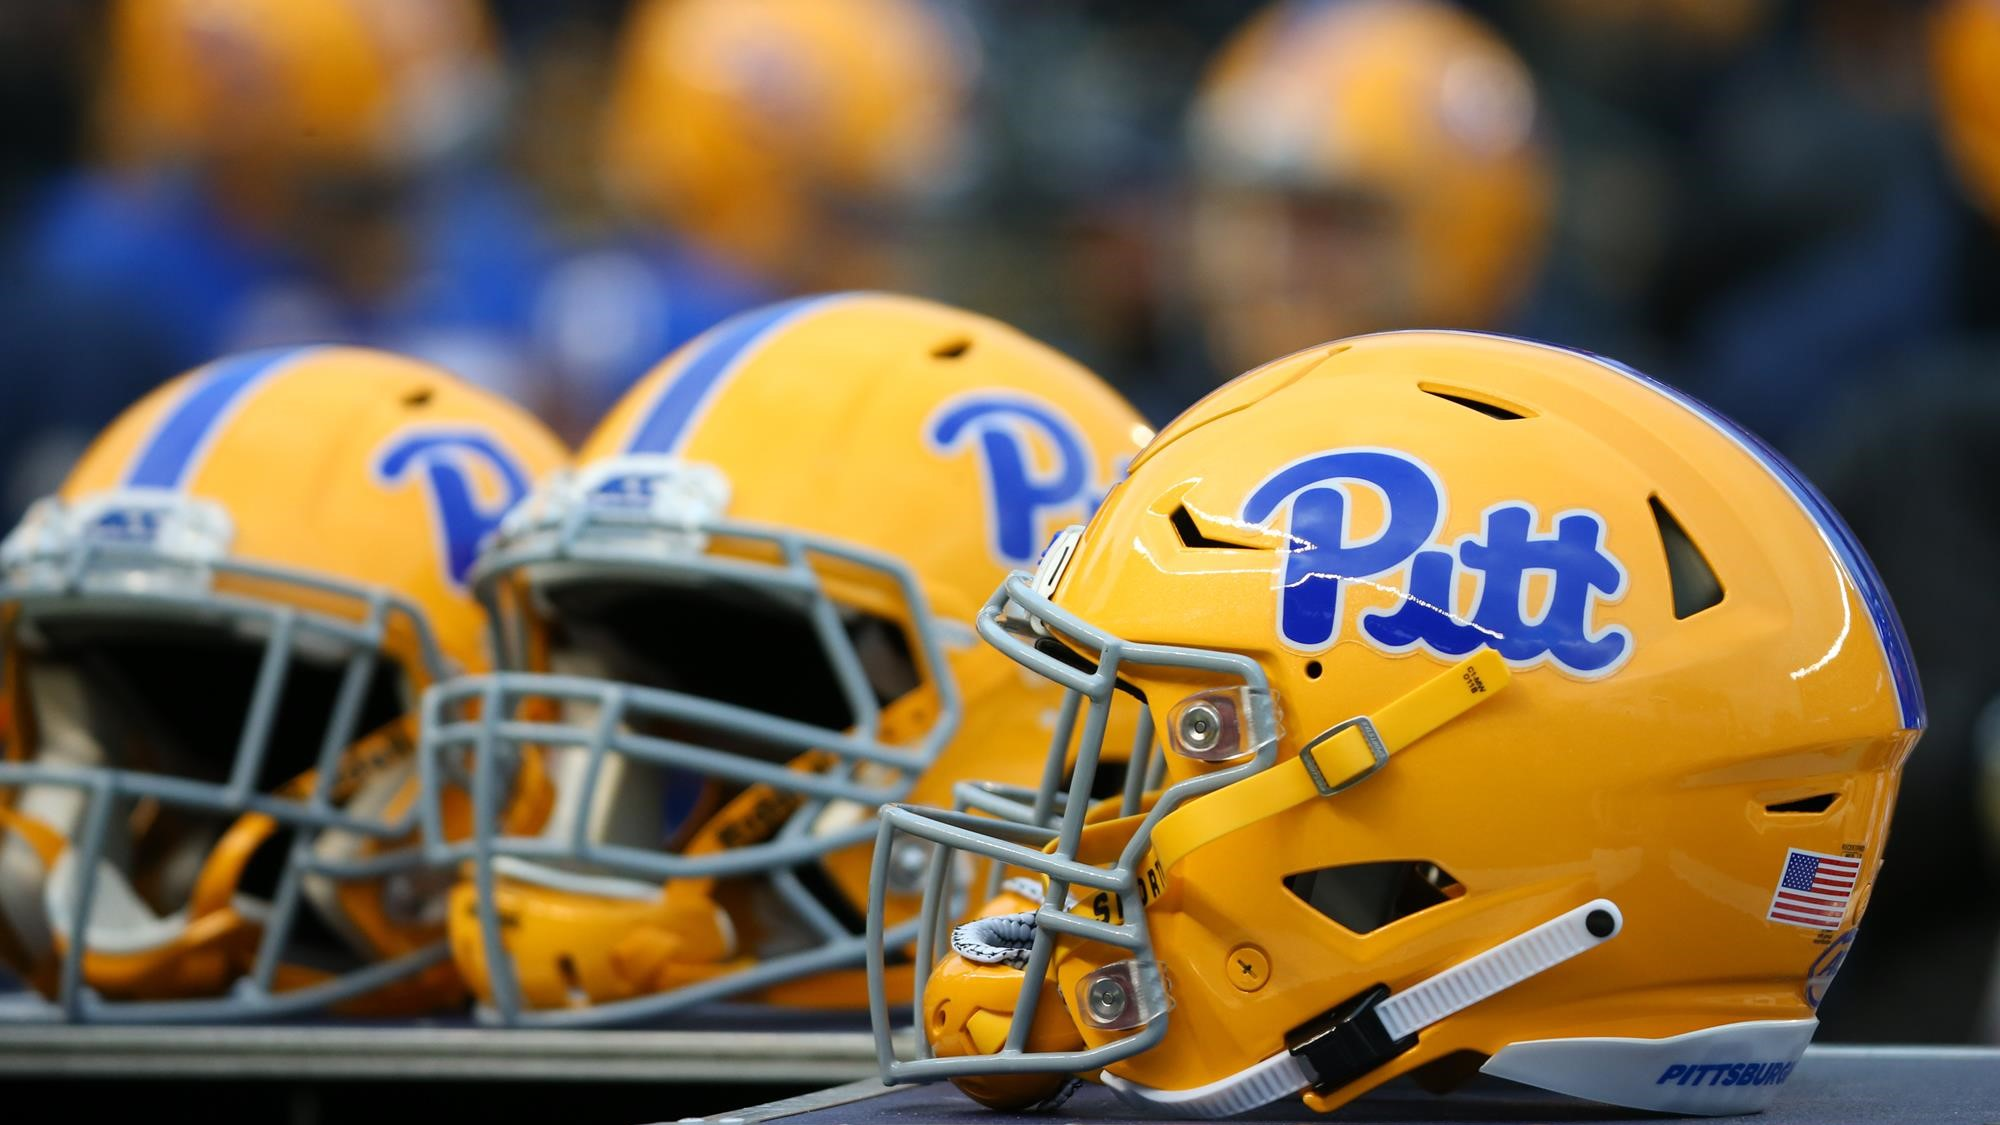 2019 Pitt Football Schedule Pitt's 2019 Football Schedule Unveiled   Pitt Panthers #H2P